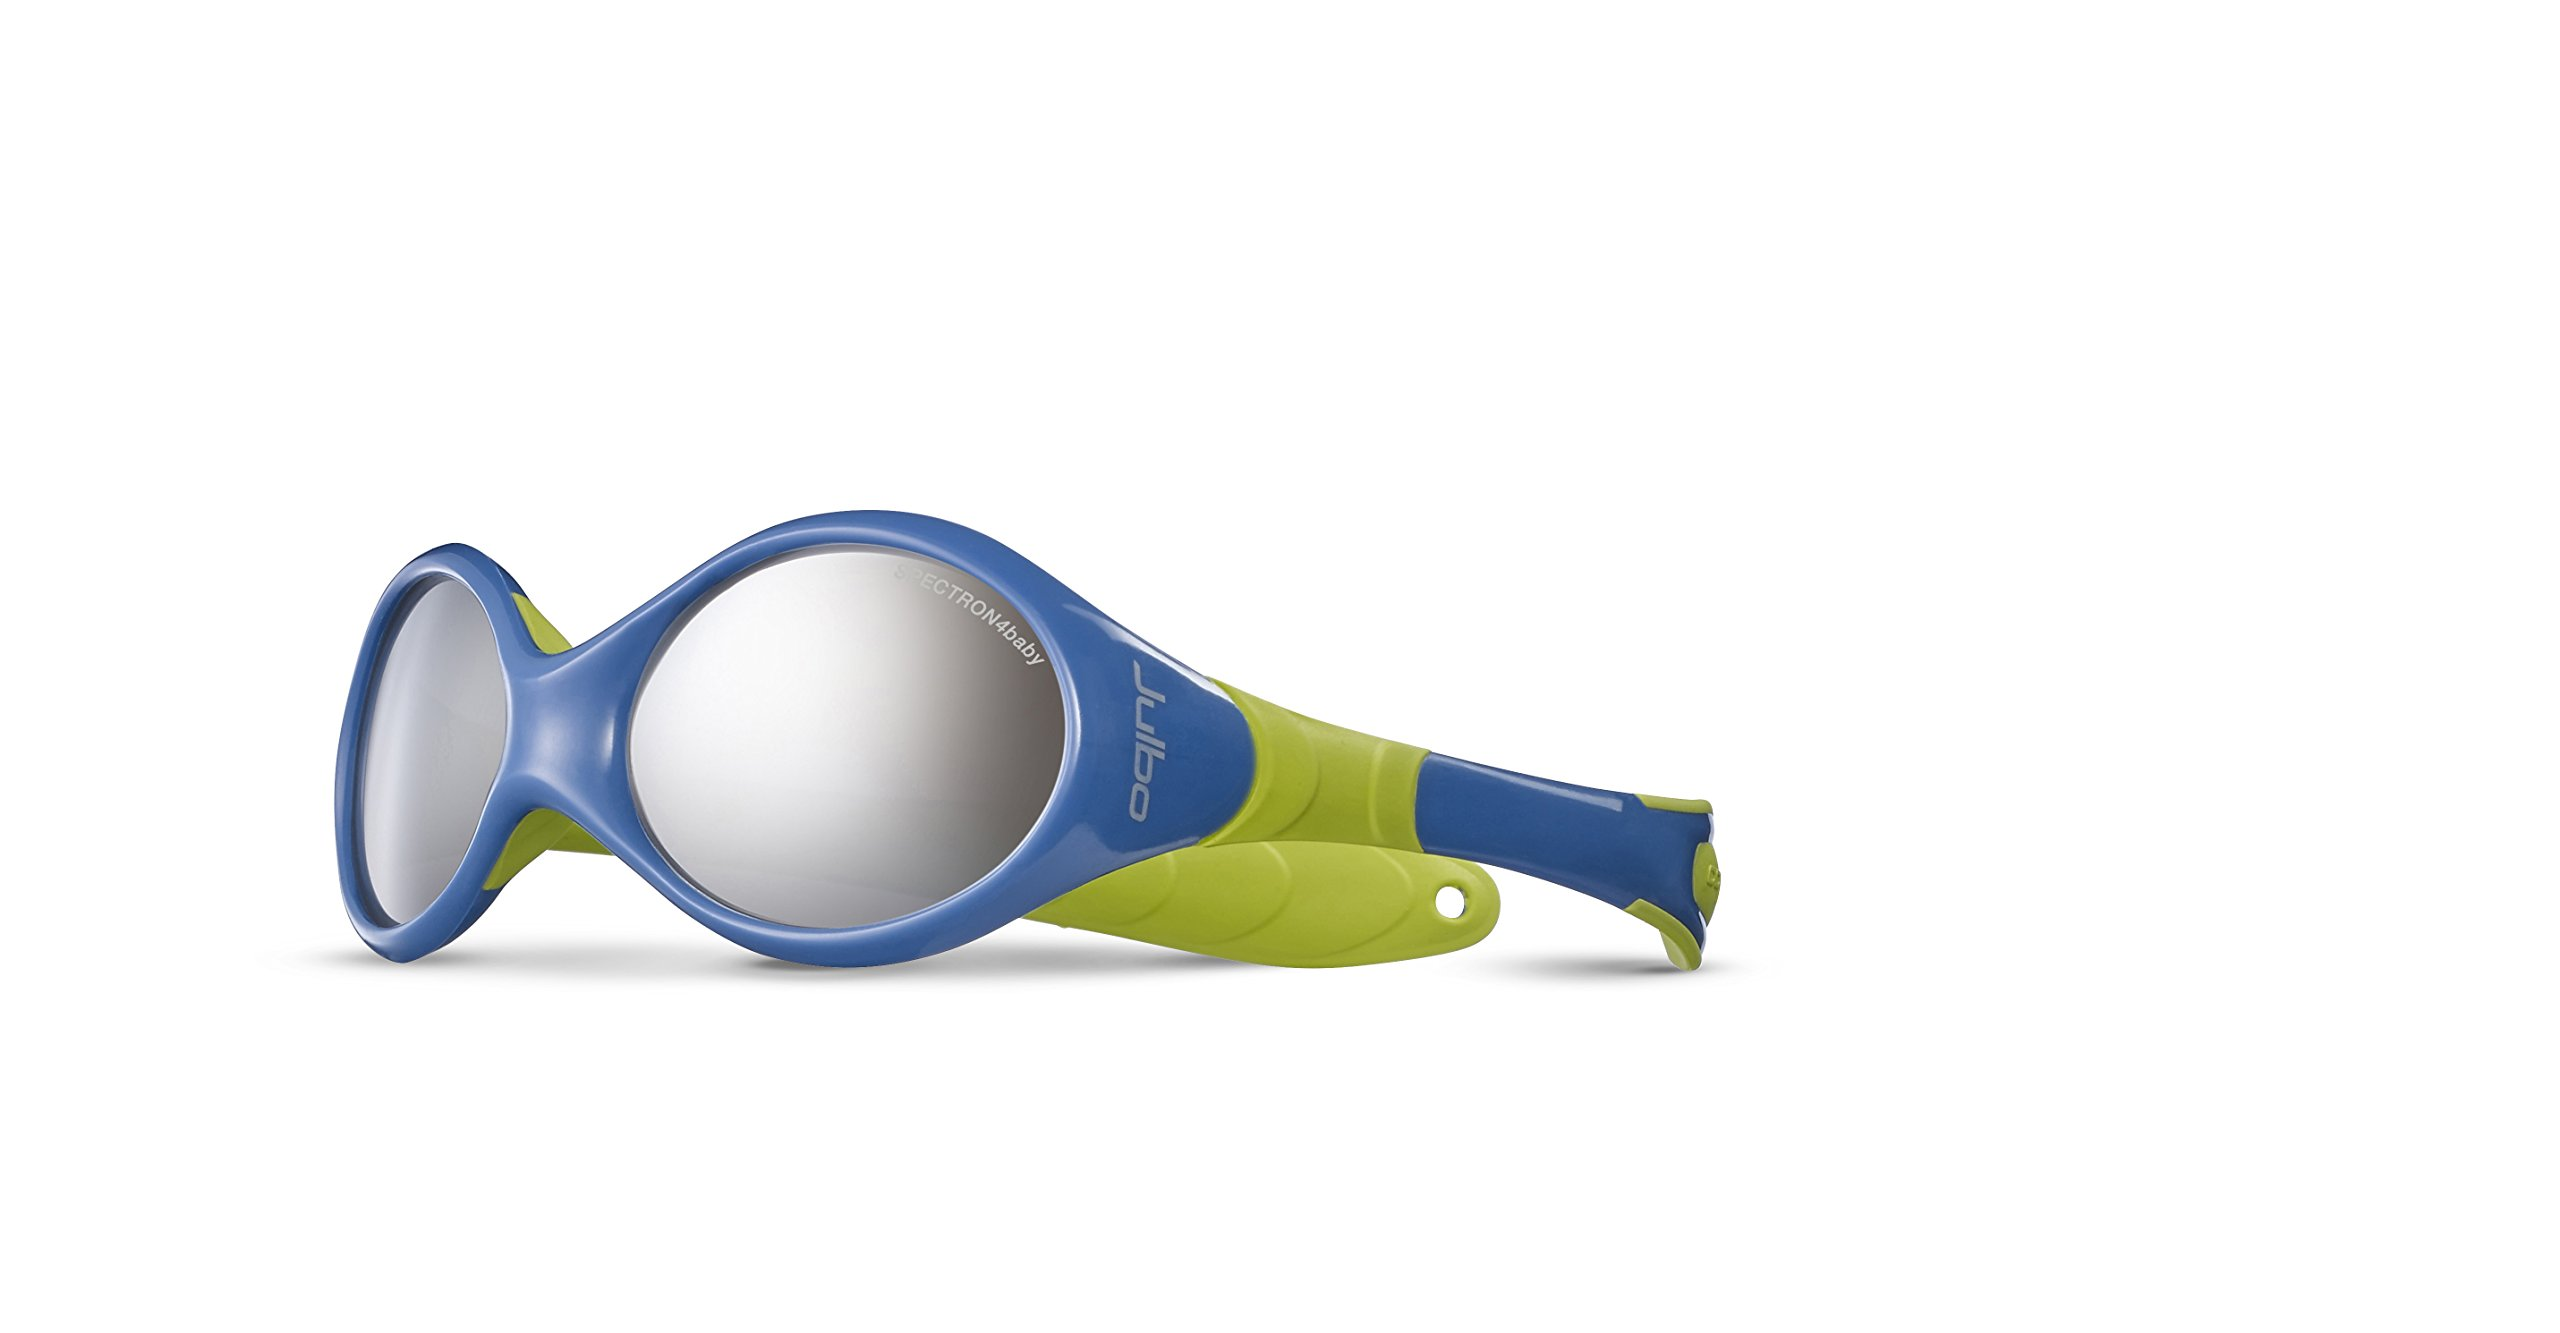 Julbo Looping 2 Sp4 Sunglasses multi-coloured Bleu/Anis Size:Taille S BEdbsyHqJT